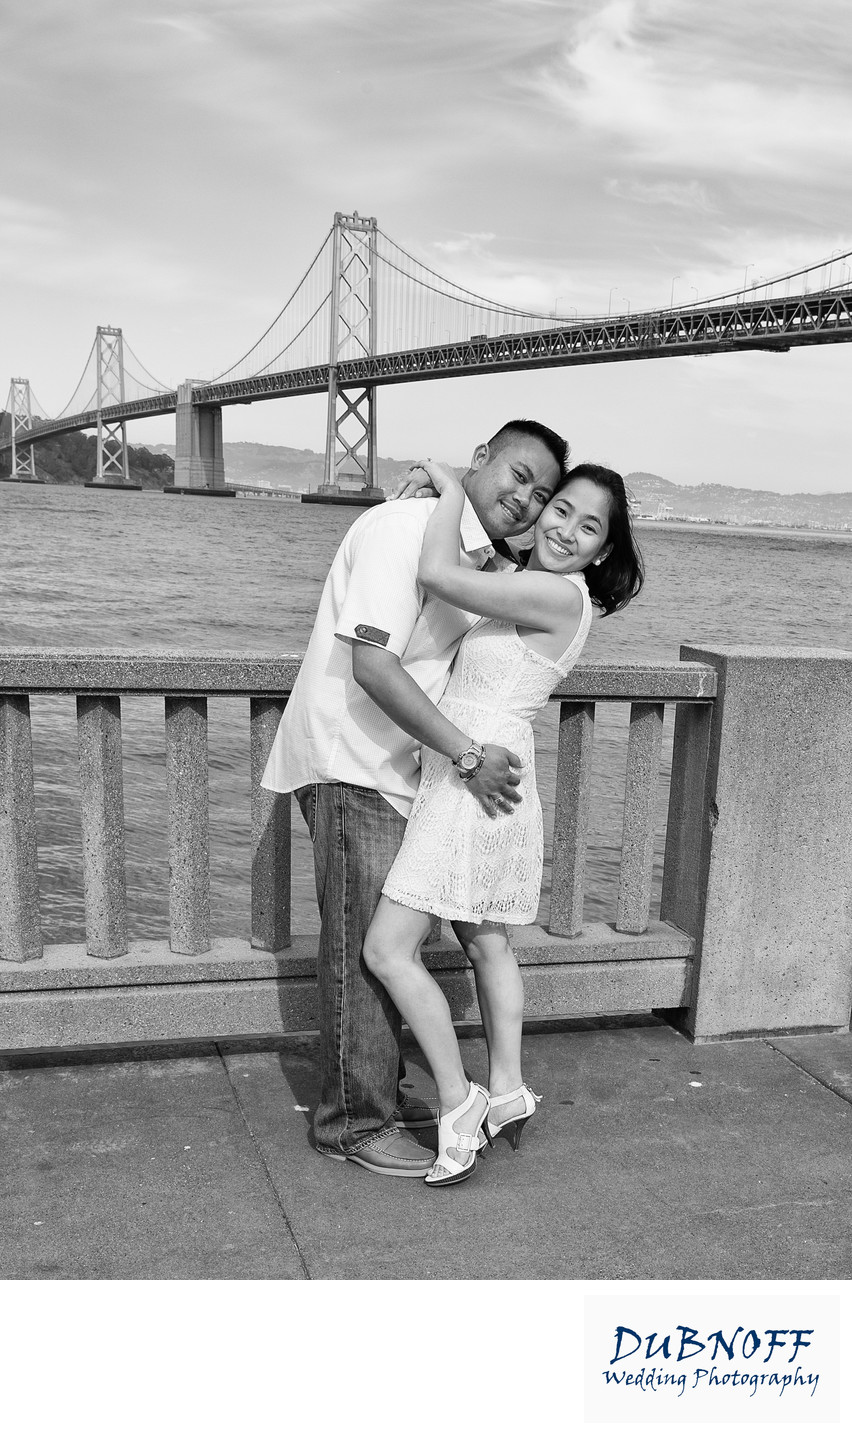 Engagement Session in San Francisco by the Bay Bridge